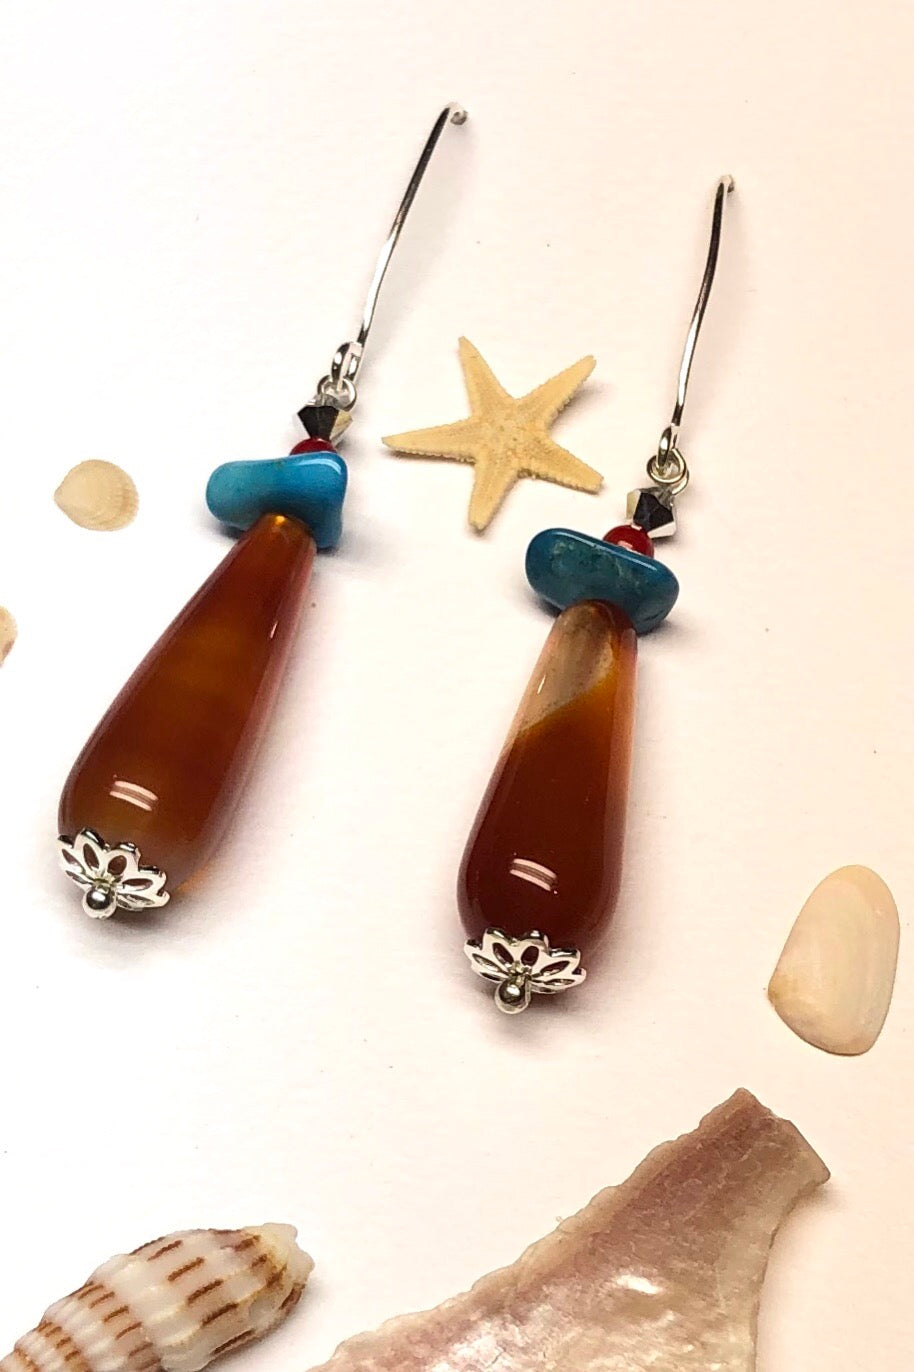 hese earth toned teardrop earrings will be attracting only the best vibes and loving energy to you.